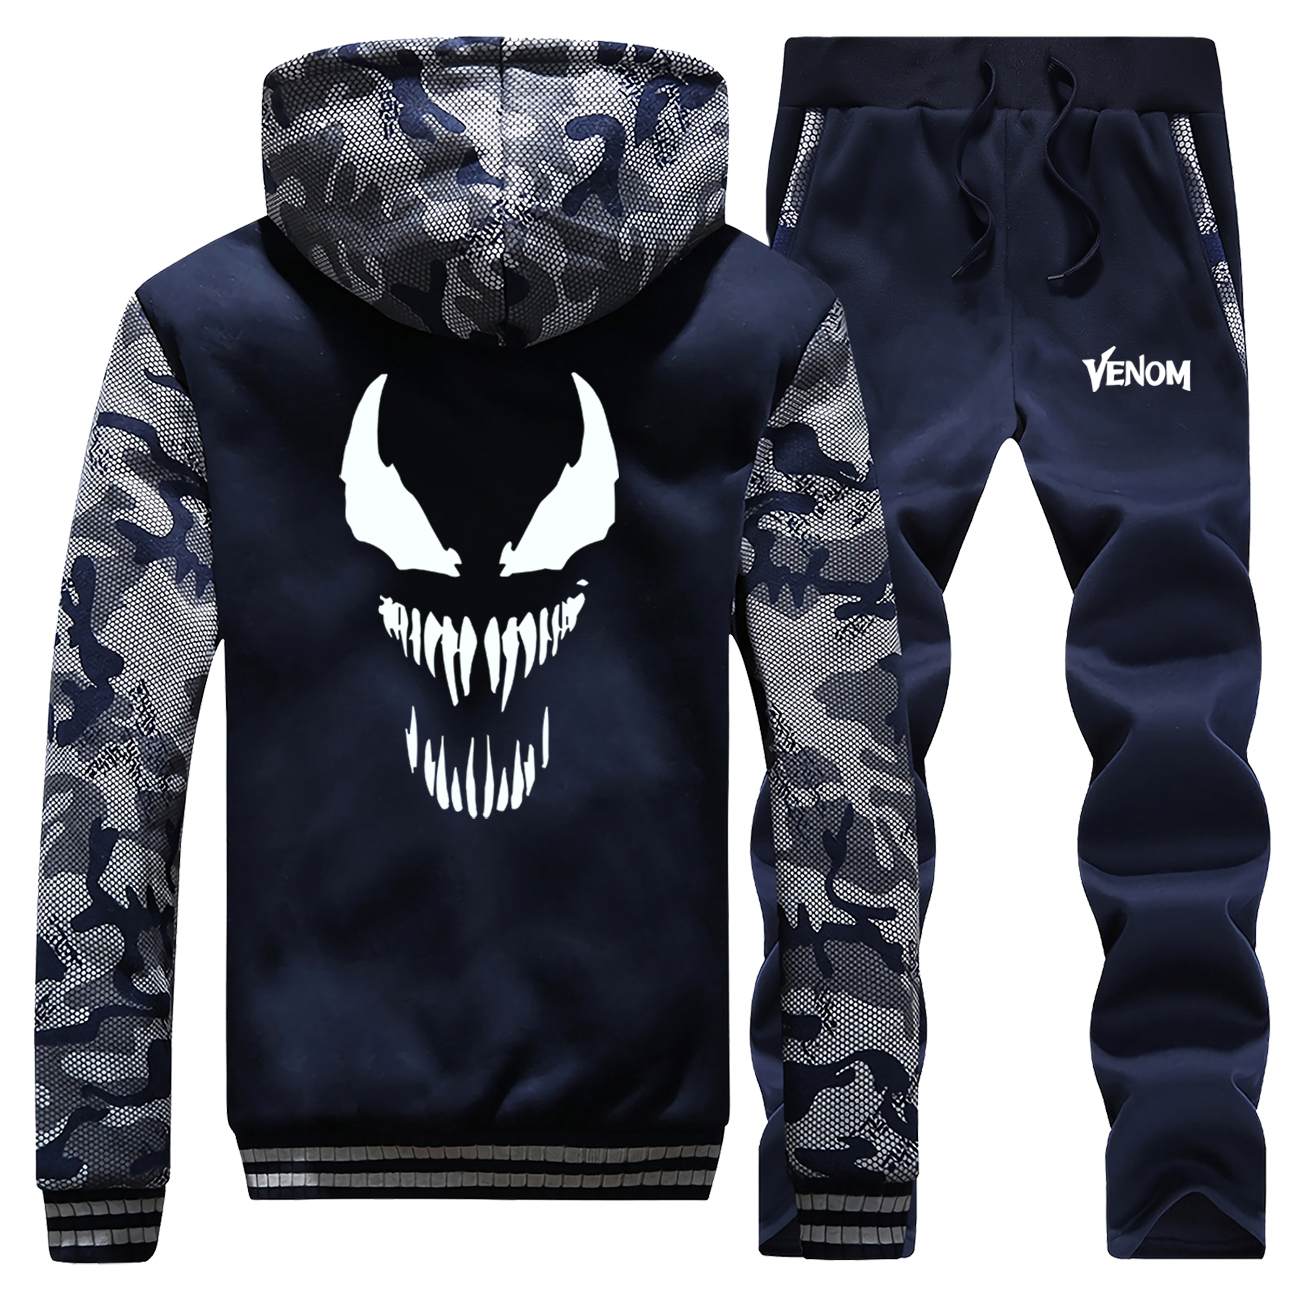 Venom Mens Jacket+Pants 2 Piece Sets Winter Camouflage Man Sweatshirts Warm Clothing Fashion Tracksuit Men Hoodies Trousers Suit